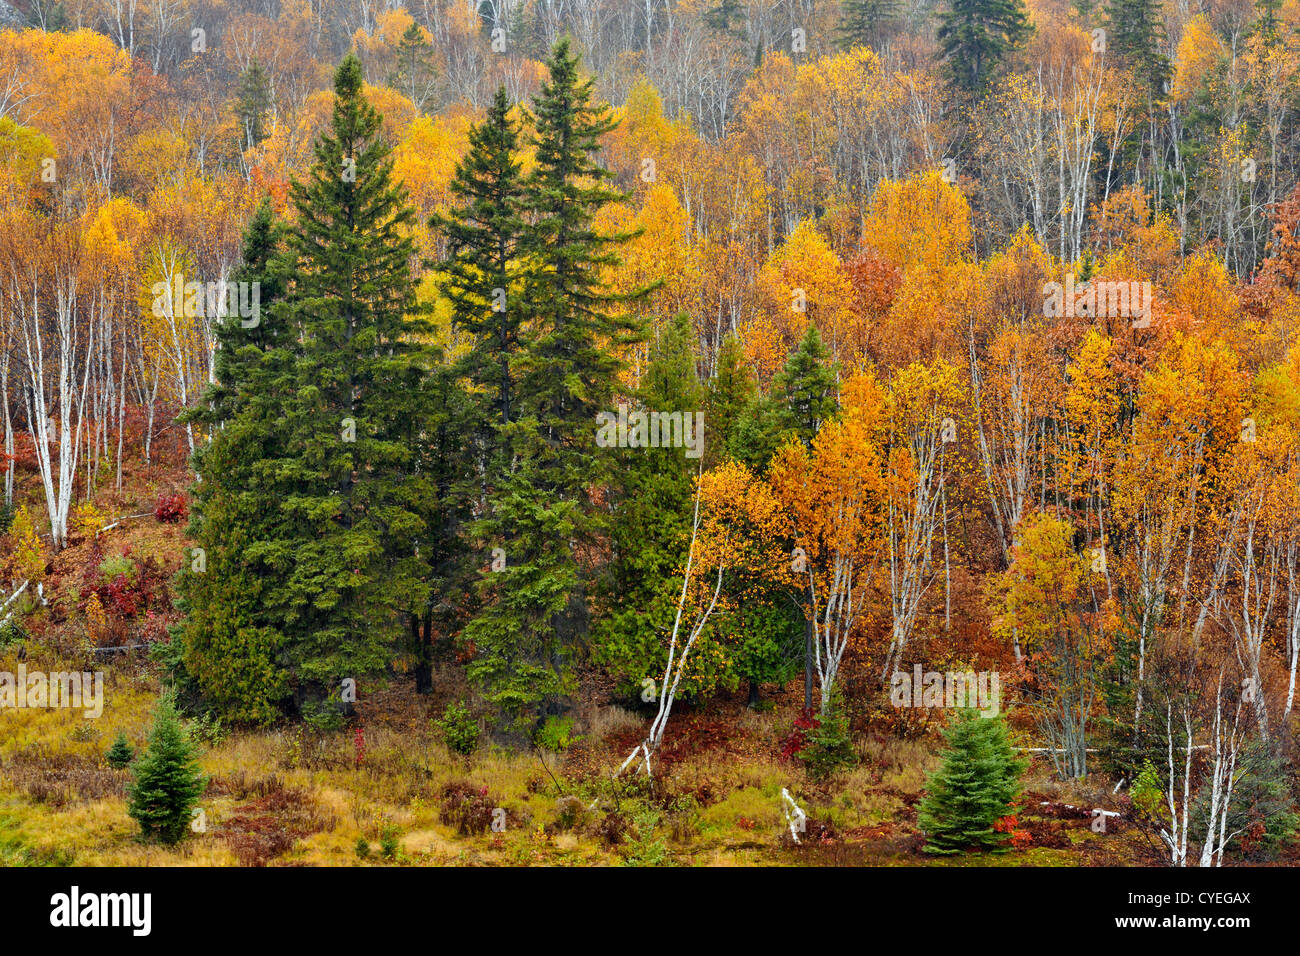 Birches, spruces and aspens on a hillside in late autumn, Greater Sudbury, Ontario, Canada - Stock Image